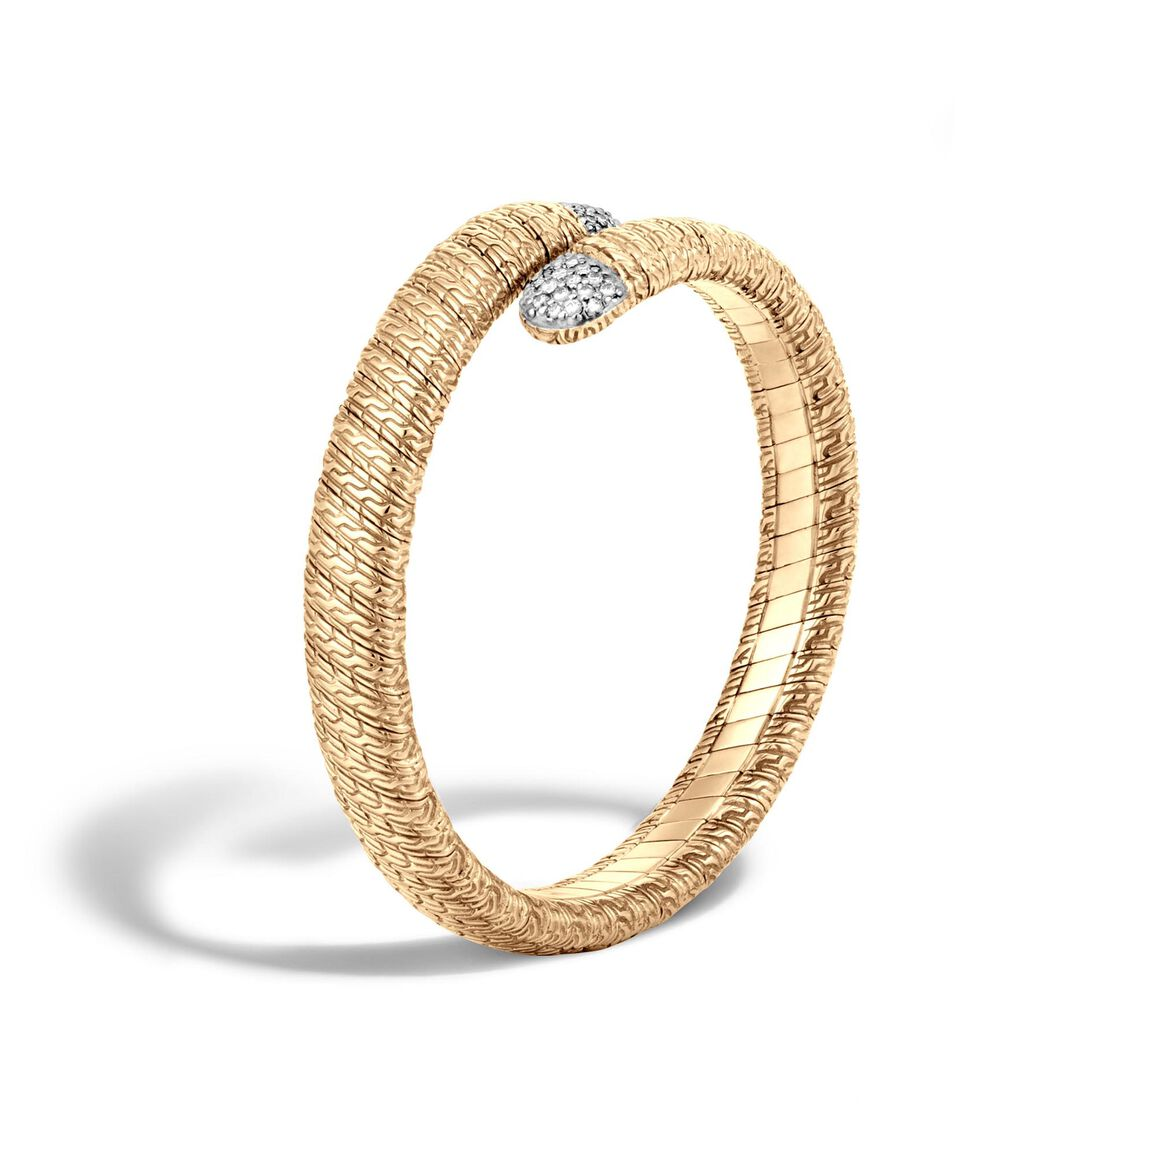 Classic Chain Single Coil Bracelet in 18K Gold with Diamonds